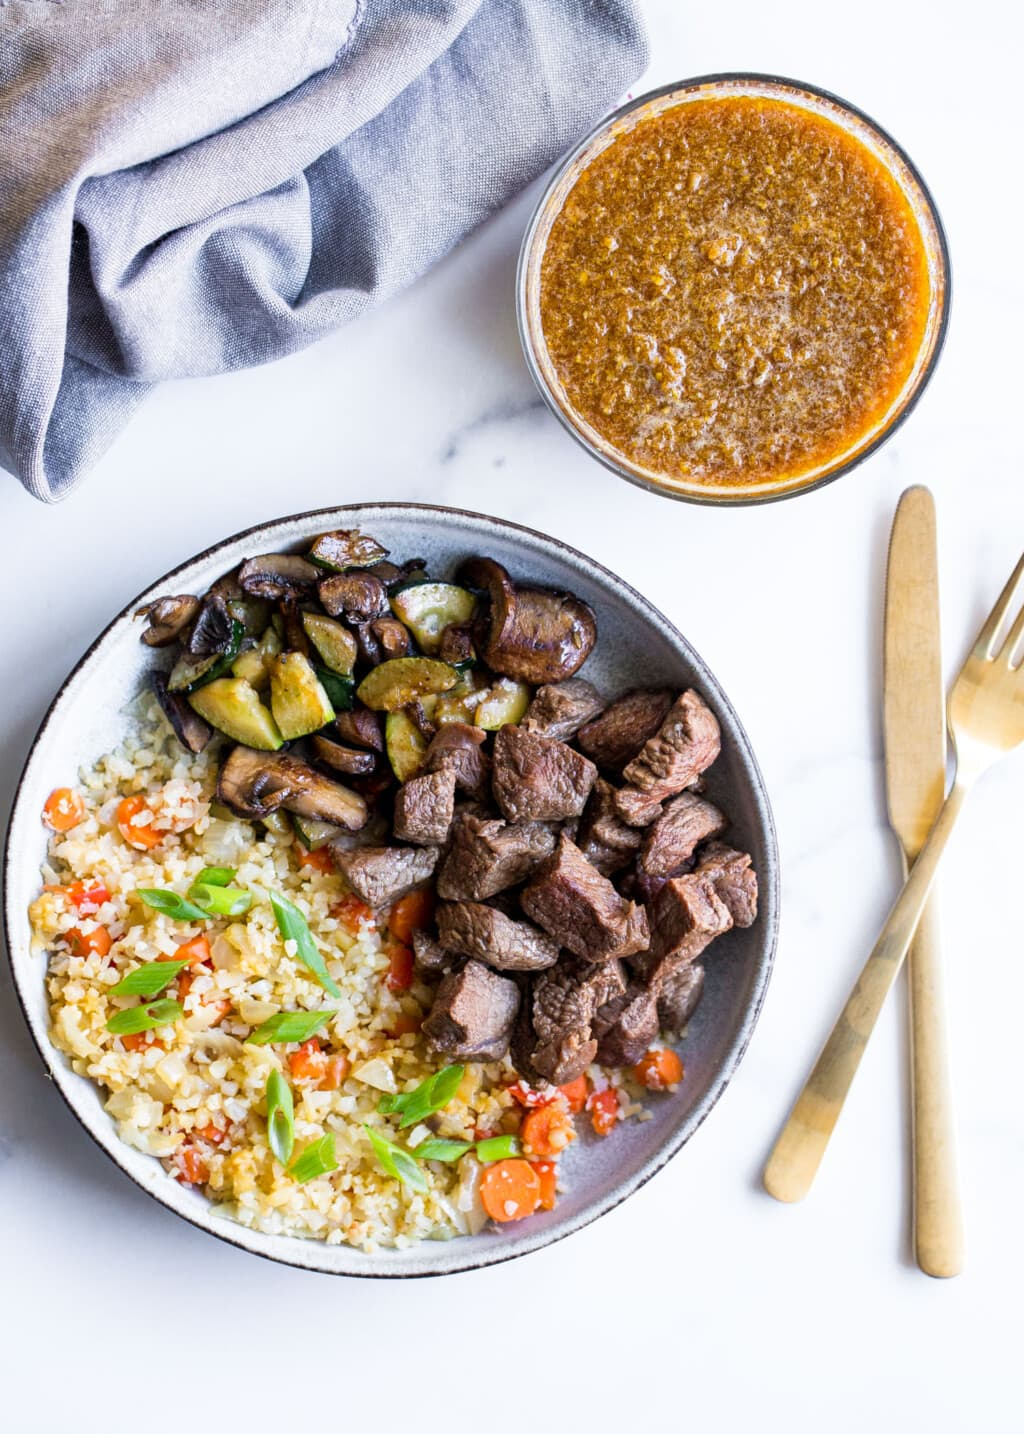 White background with bowl of steak and veggies in the middle. Gold fork and knife in the background.